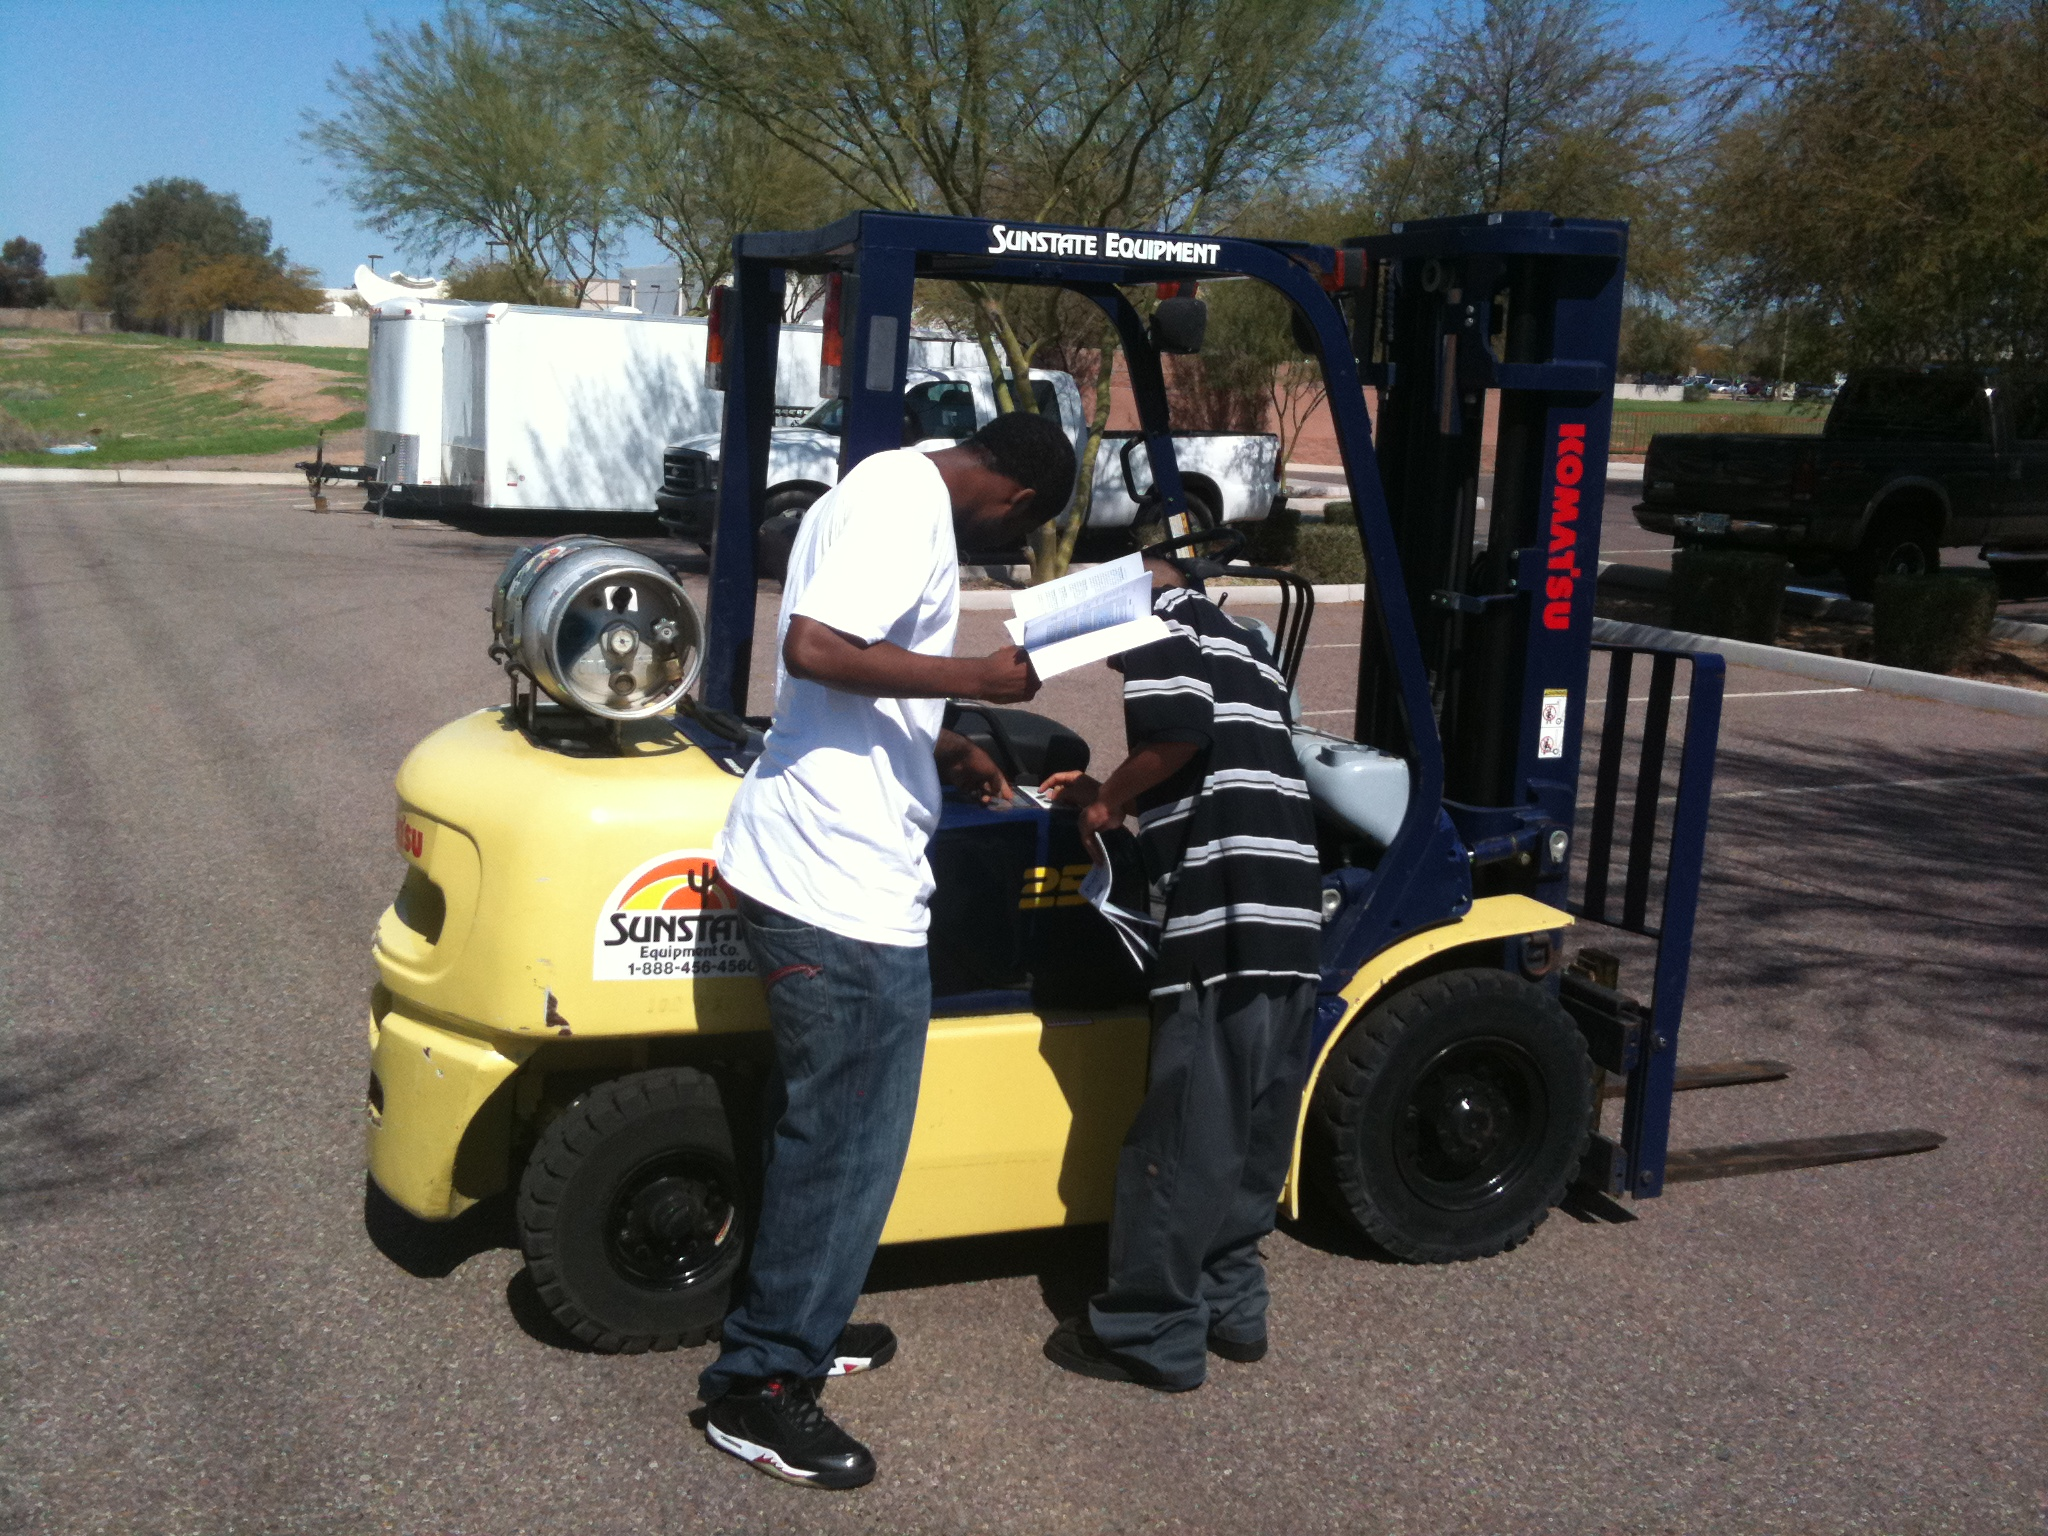 Forklift university of southern california 7805 telegraph rd ste e forklift university of southern california 7805 telegraph rd ste e montebello ca 90640 yp 1betcityfo Gallery